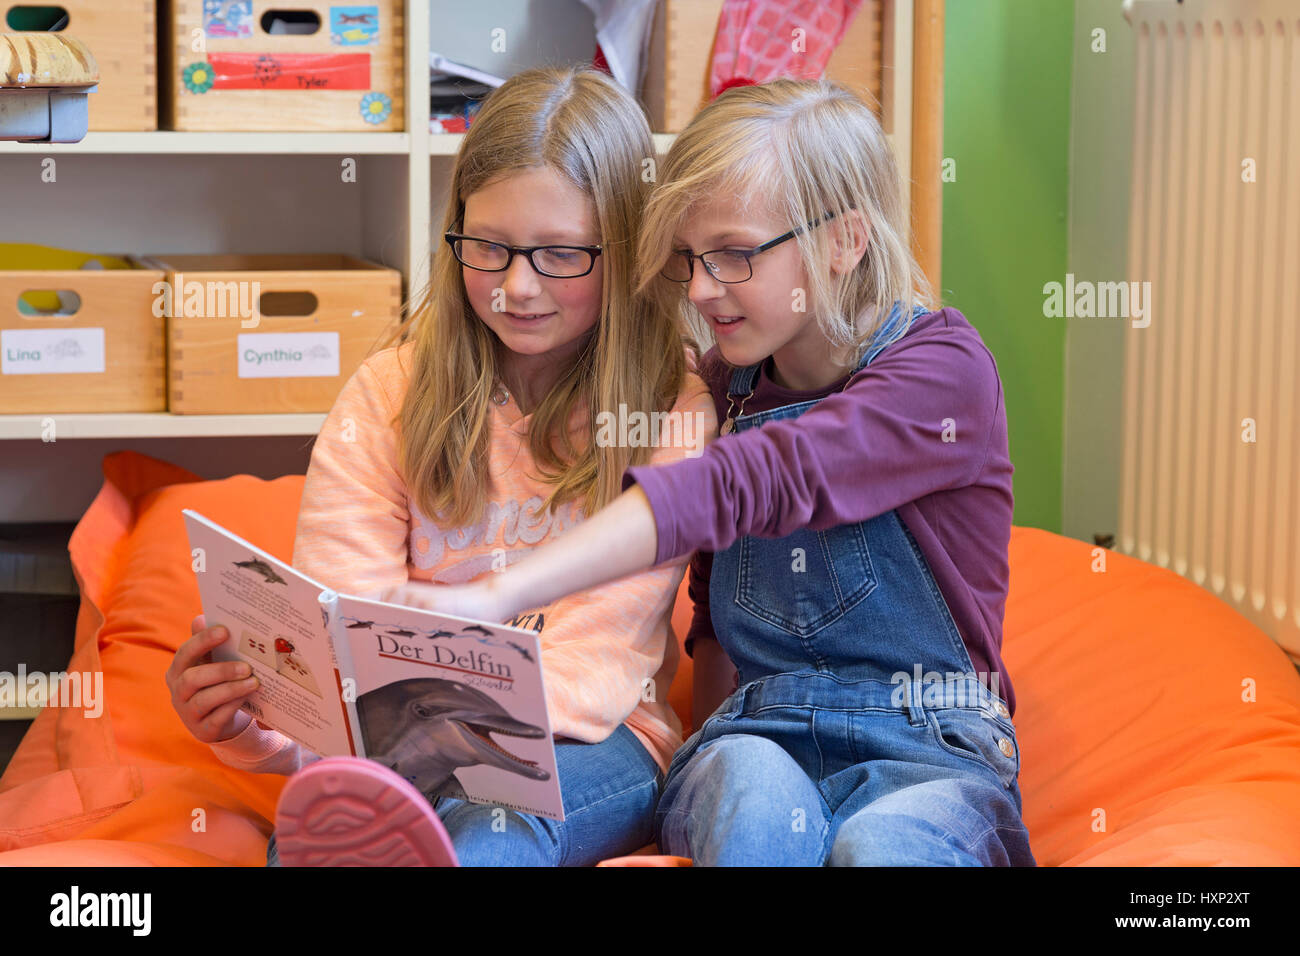 two girls reading a book together at primary school - Stock Image